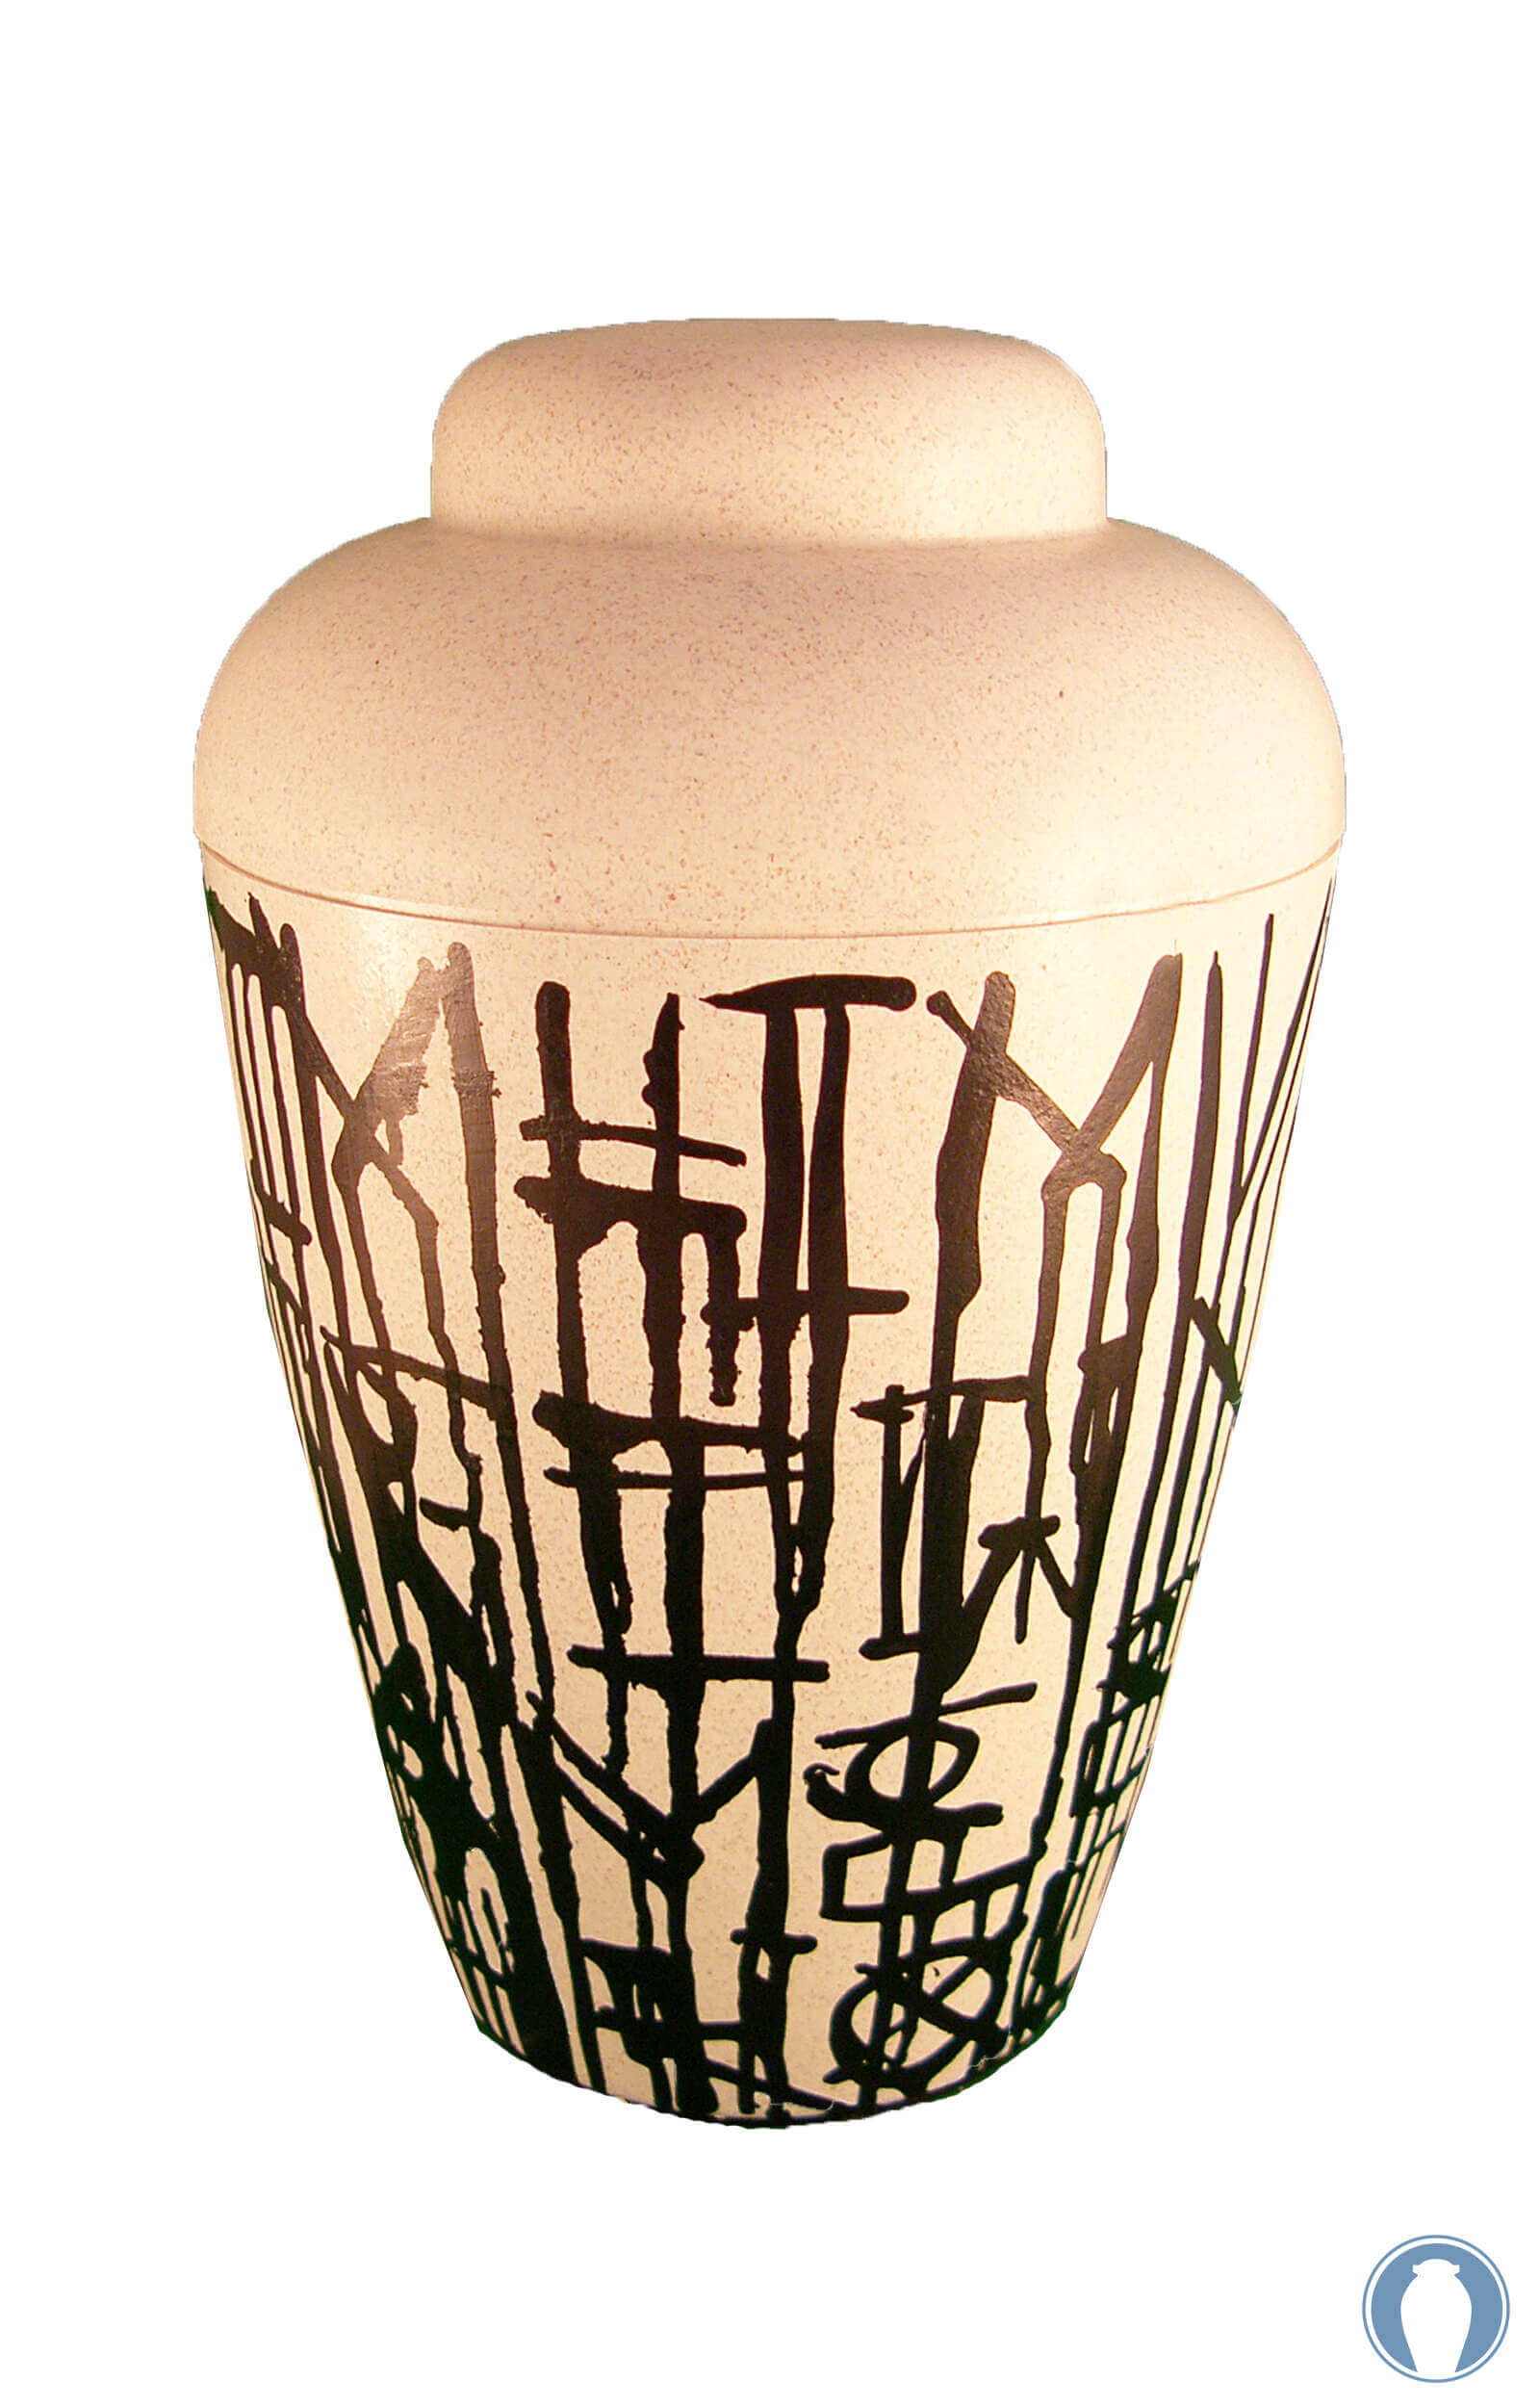 en KB02 biodegradable classic abstract urn